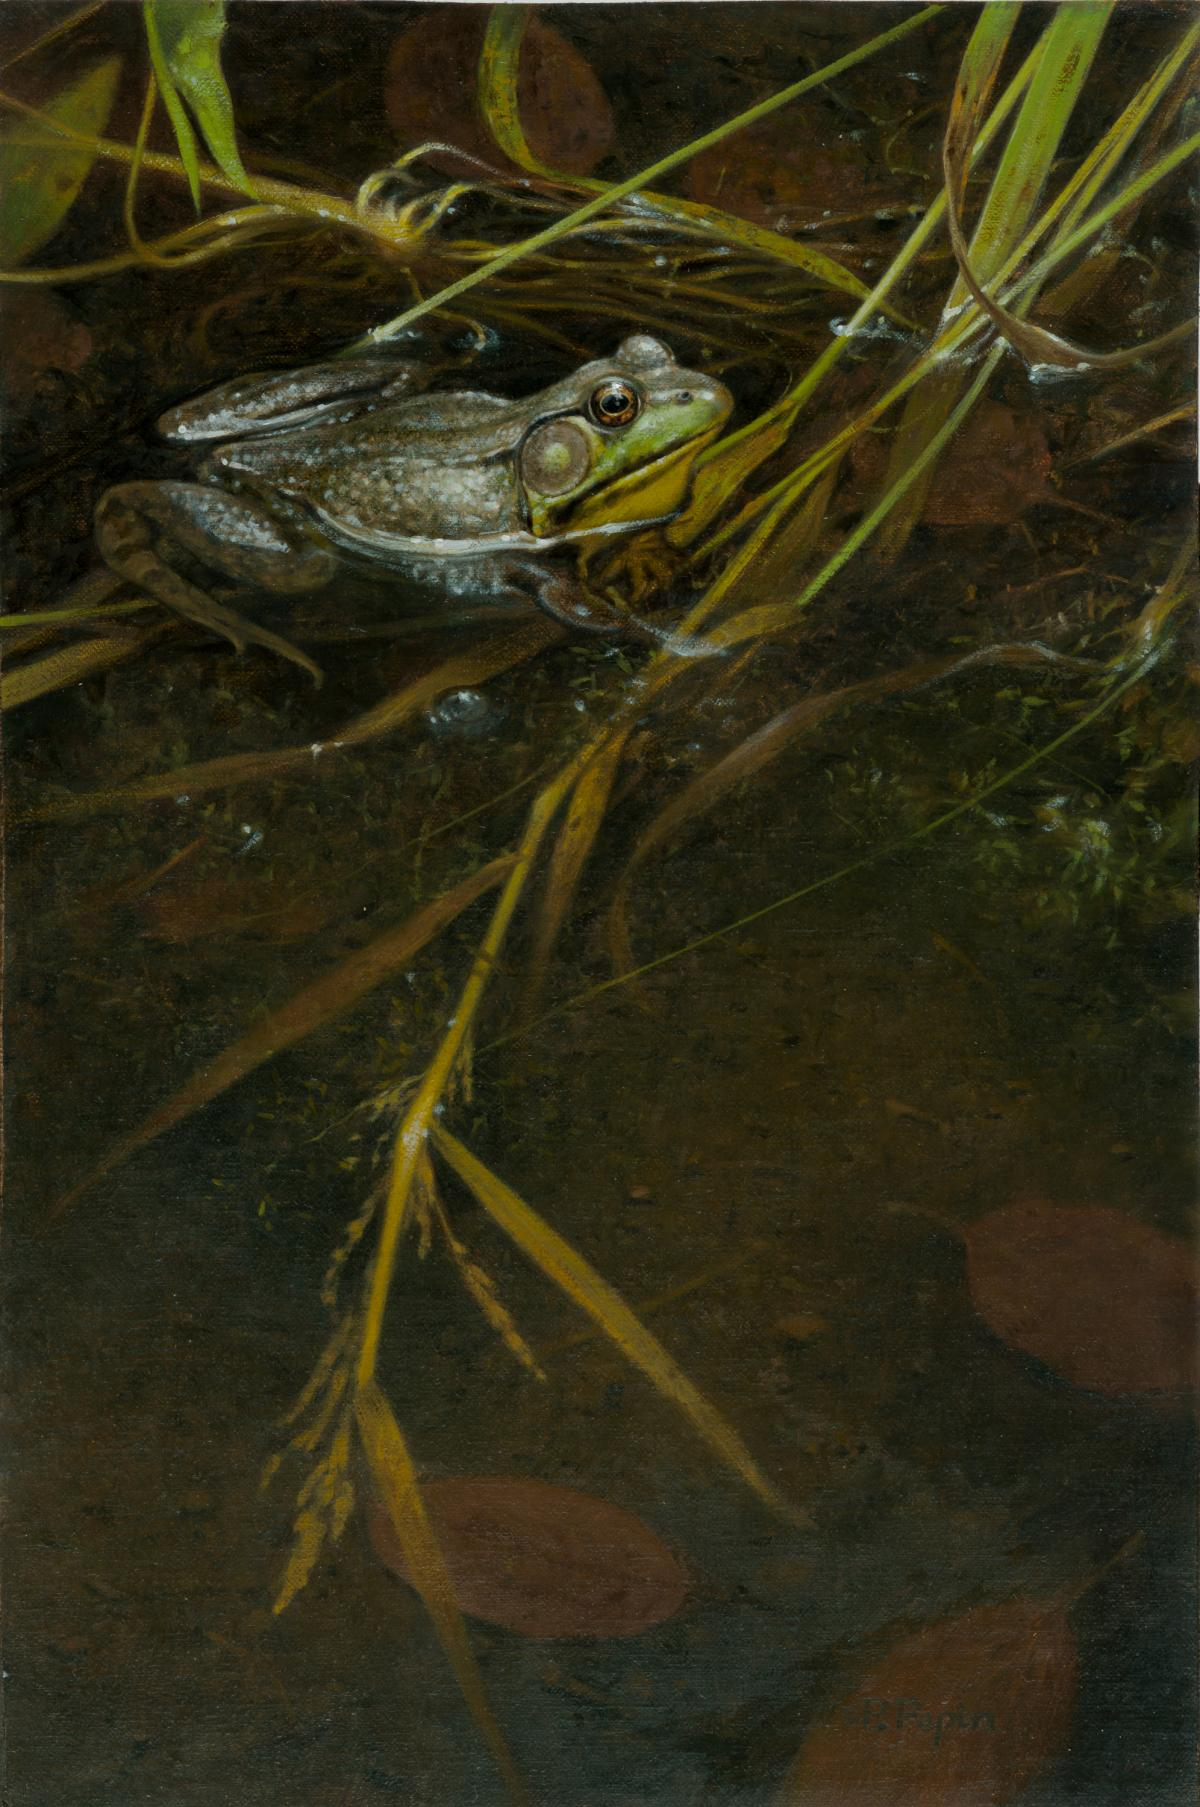 Guard Frog   Wallhanging by Patricia Pepin   Artists for Conservation 2021